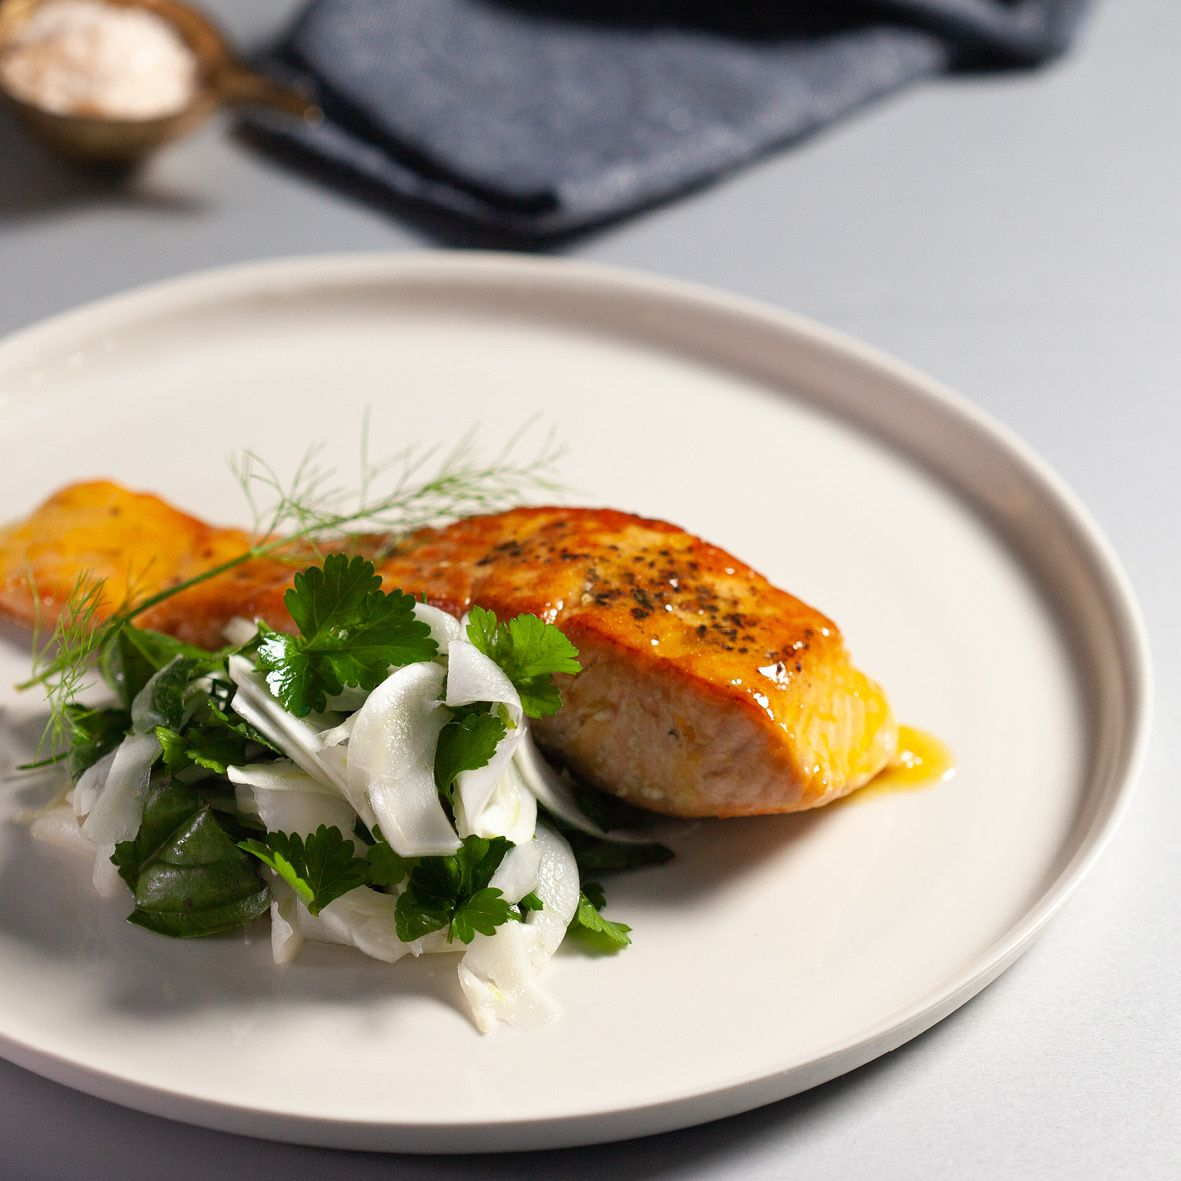 Orange_and_Rosemary_Salmon_with_Fennel_Salad.jpg